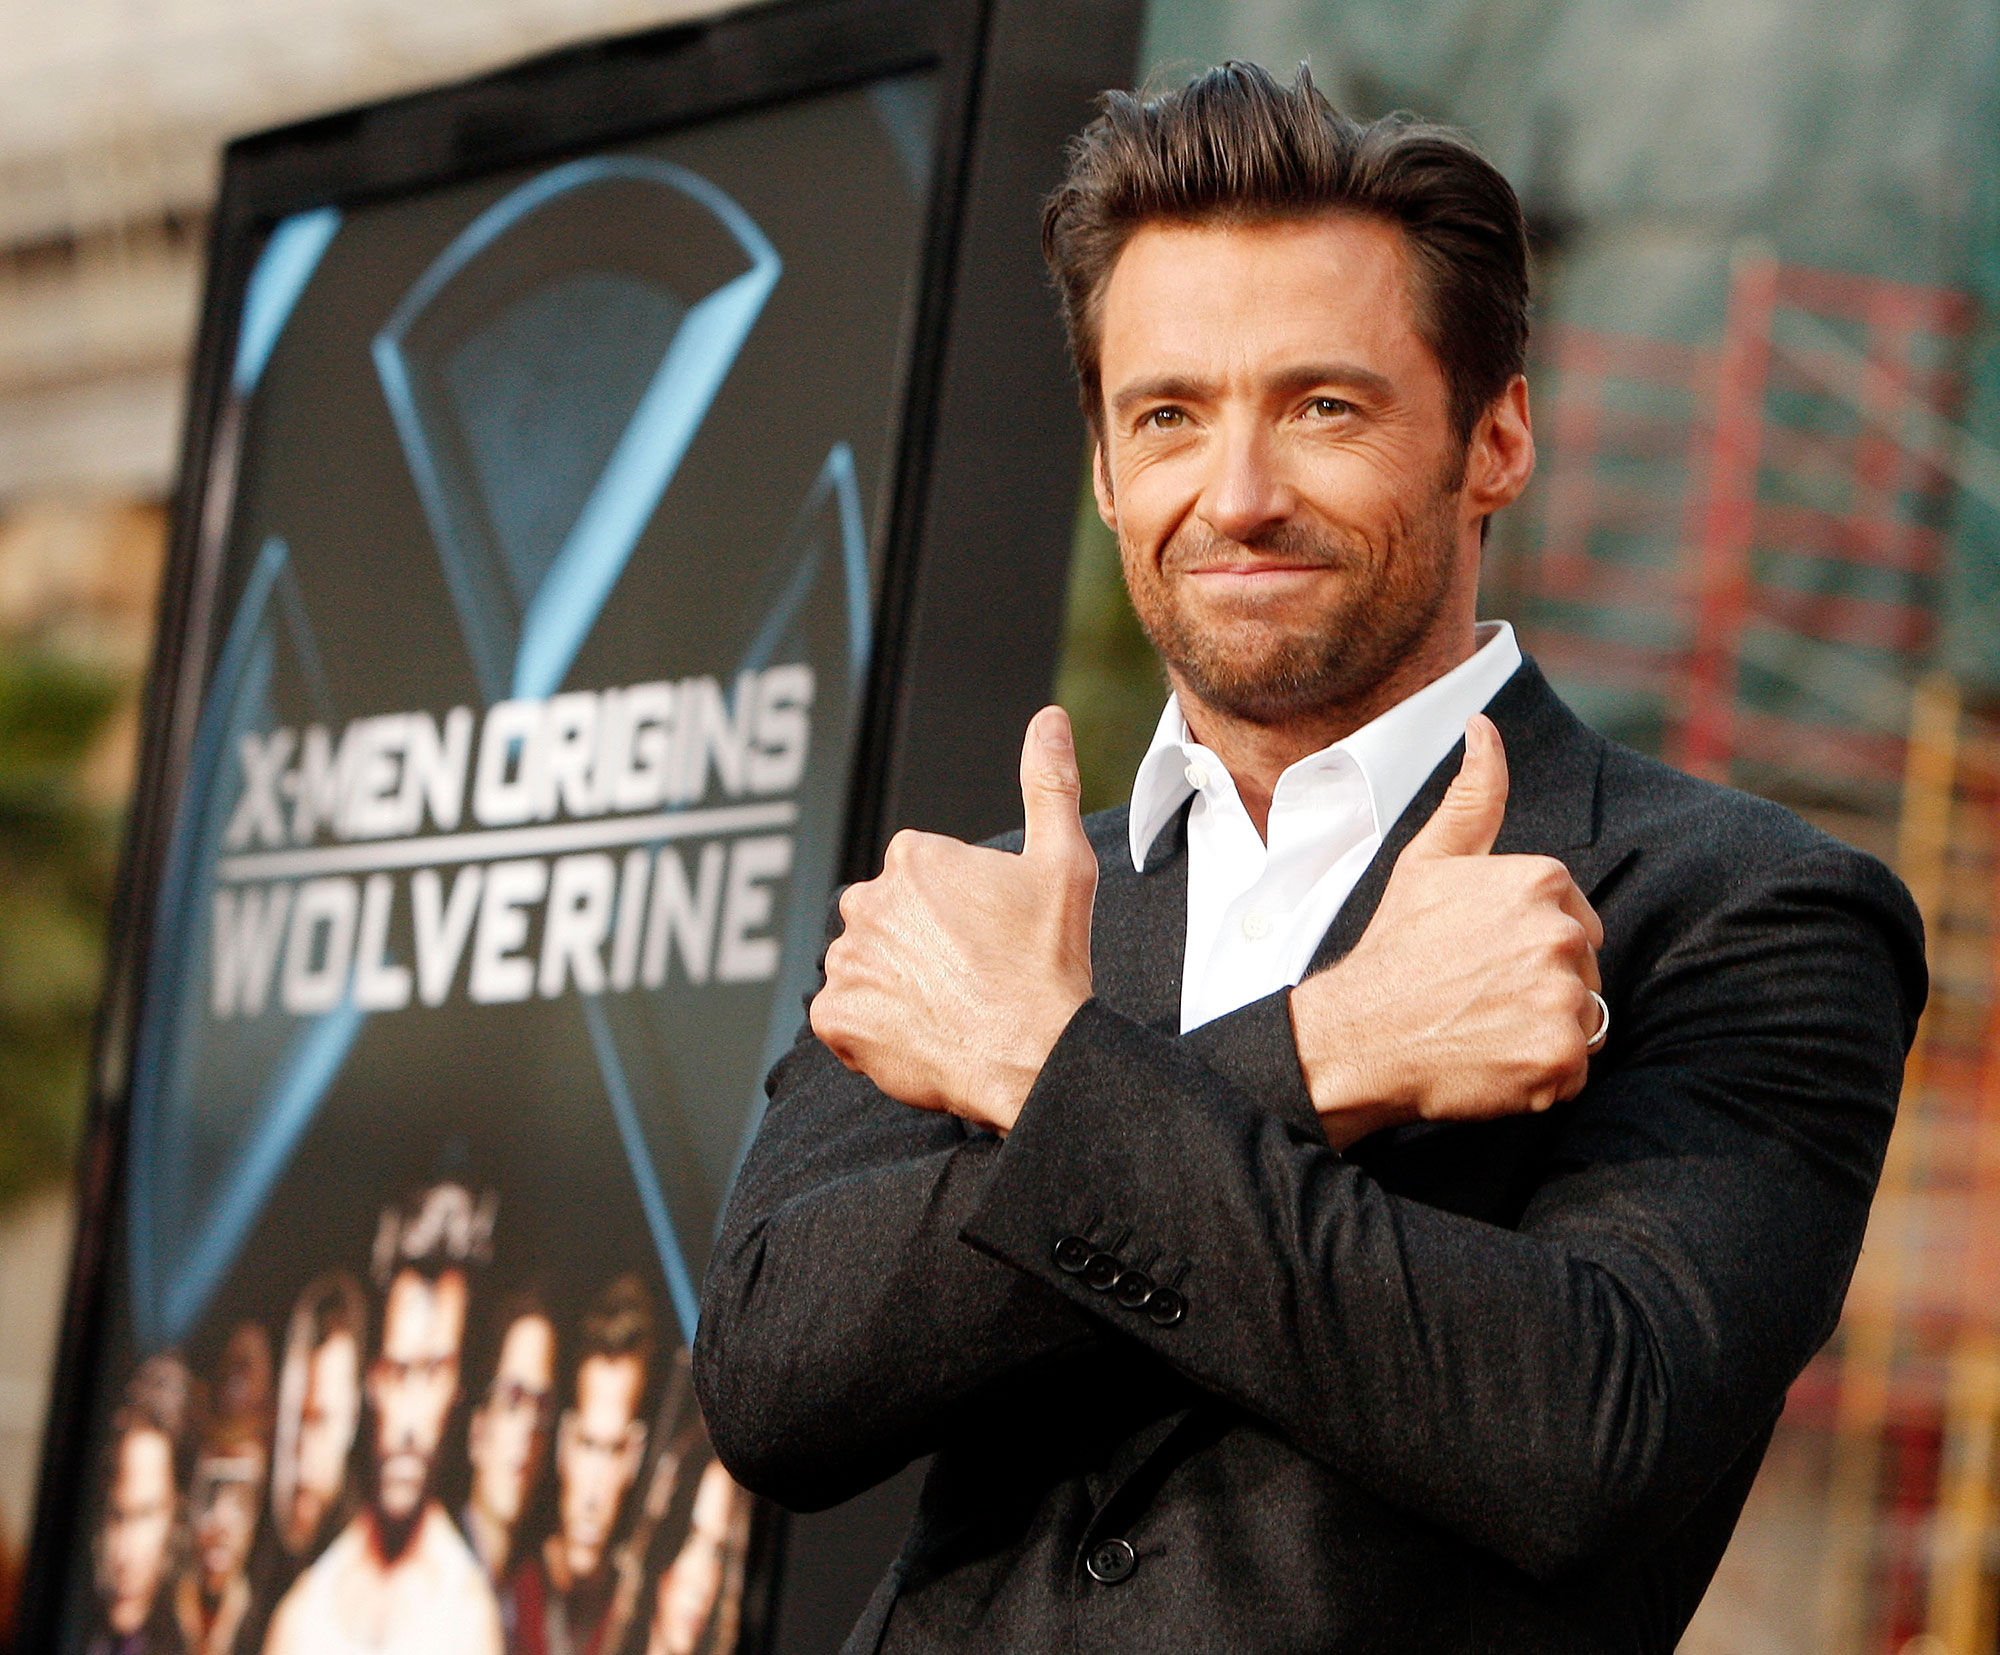 "Hugh Jackman Teachers Before Fame - LOS ANGELES, CA – APRIL 28: Actor Hugh Jackman arrives at the screening 20th Century Fox's ""X-Men Origins: Wolverine"" at the Chinese Theater on April 28, 2009 in Los Angeles, California. (Photo by Kevin Winter/Getty Images)"